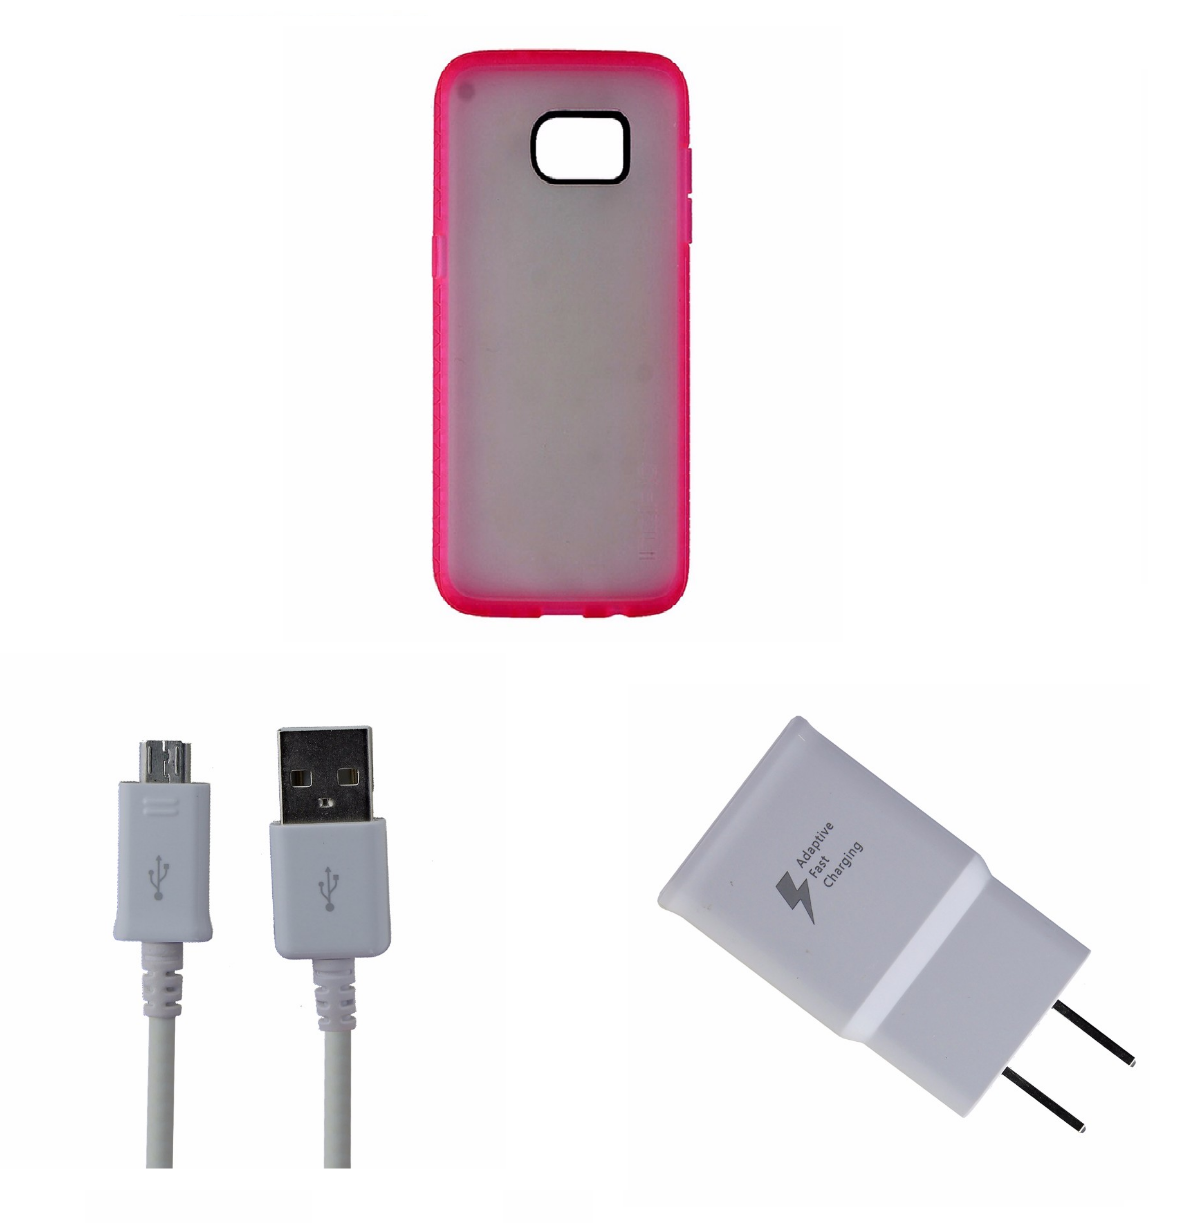 OEM Samsung Cable and Adapter KIT with Incipio Octane S7 Edge Frost/Pink Case